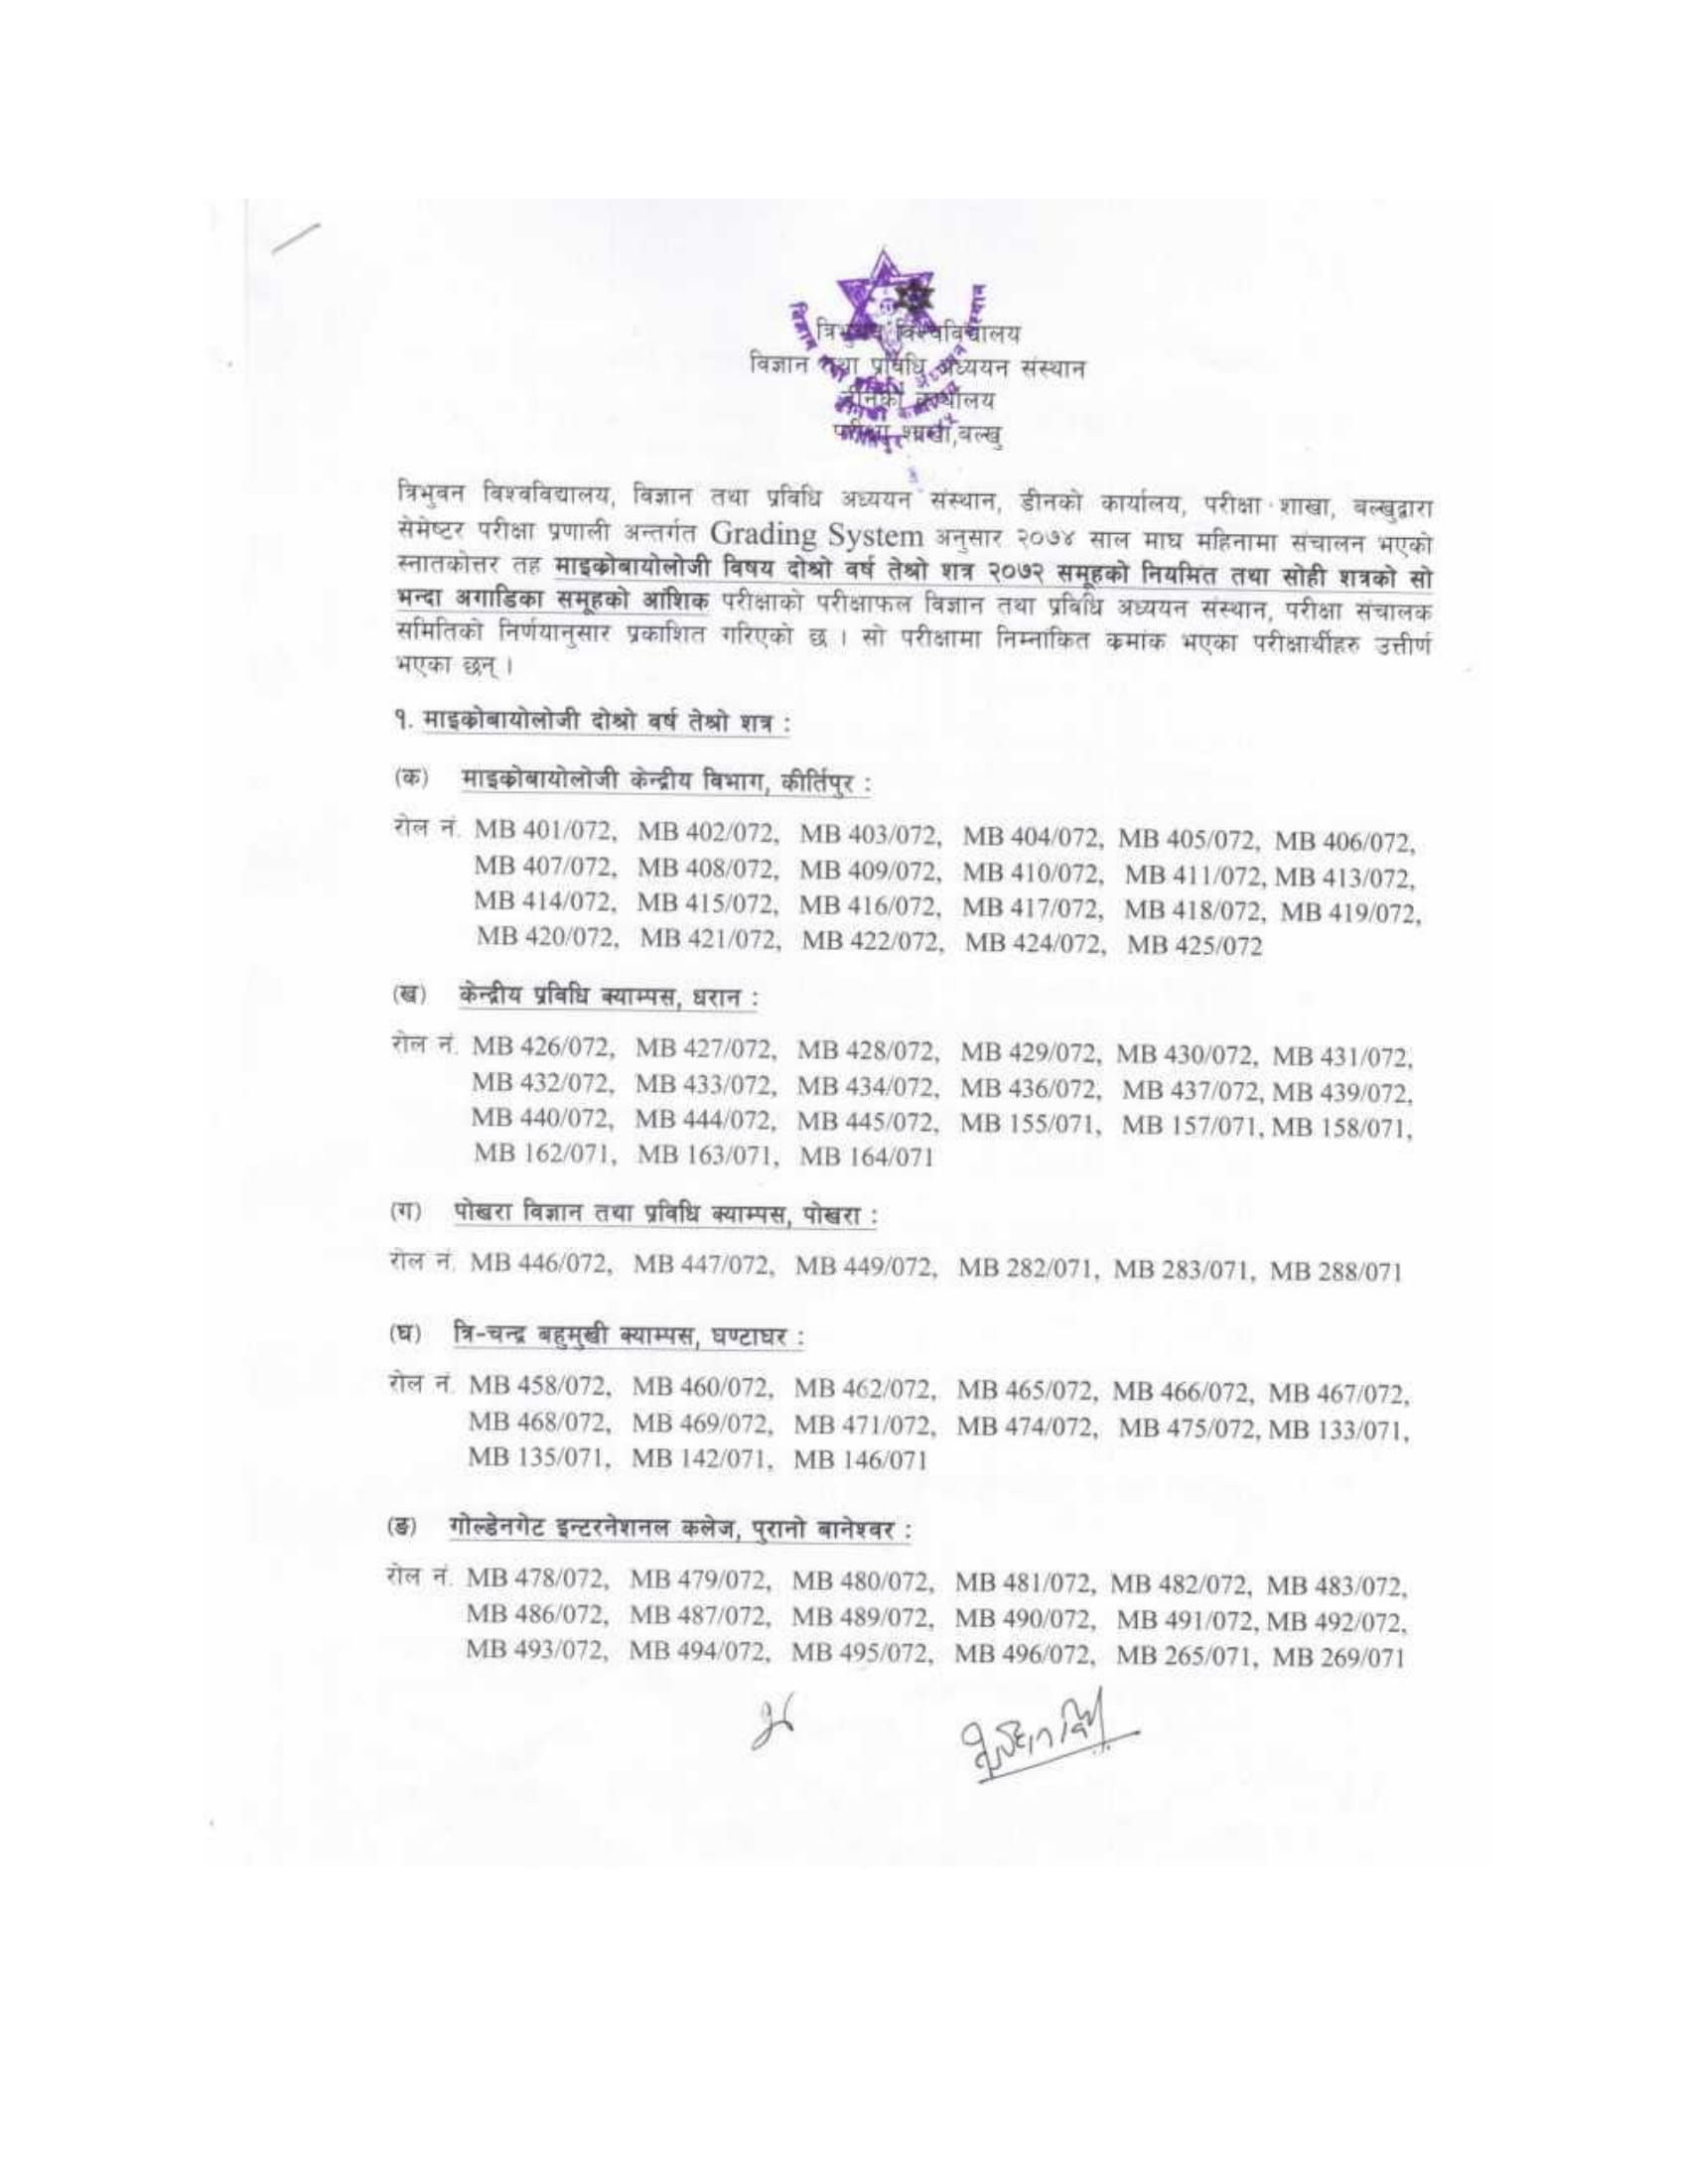 Tribhuvan University M.Sc. Microbiology III Semester Exam Result 2075